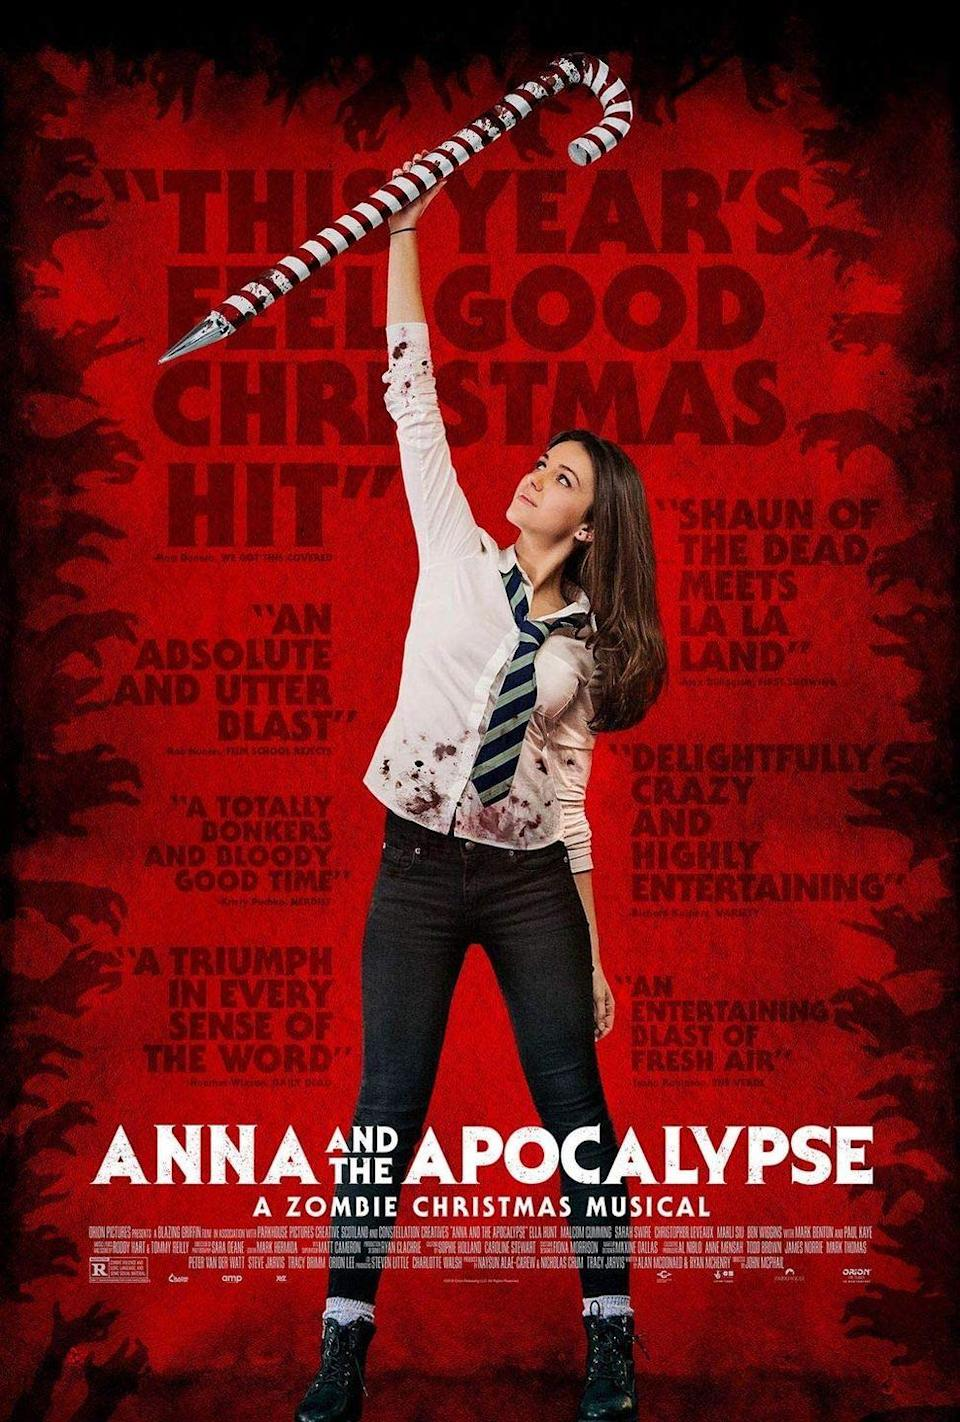 "<p>The music in <em>Anna and the Apocalypse, </em>written by Scottish singer-songwriters Roddy Hart and Tommy Reilly, skews pop. What sets the 2017 musical apart is its plot and Frankenstein-level mix of genres. It's a small-town British coming of age movie wrapped inside a zombie film that just so happens to be a musical. And if that makes you expect ho-hum horror, just know that <em>Anna </em>is dark and surprisingly subversive in its twists and turns.</p><p><a class=""link rapid-noclick-resp"" href=""https://www.amazon.com/Anna-Apocalypse-Ella-Hunt/dp/B07KWJPDXK?tag=syn-yahoo-20&ascsubtag=%5Bartid%7C10063.g.34344525%5Bsrc%7Cyahoo-us"" rel=""nofollow noopener"" target=""_blank"" data-ylk=""slk:WATCH NOW"">WATCH NOW</a></p>"